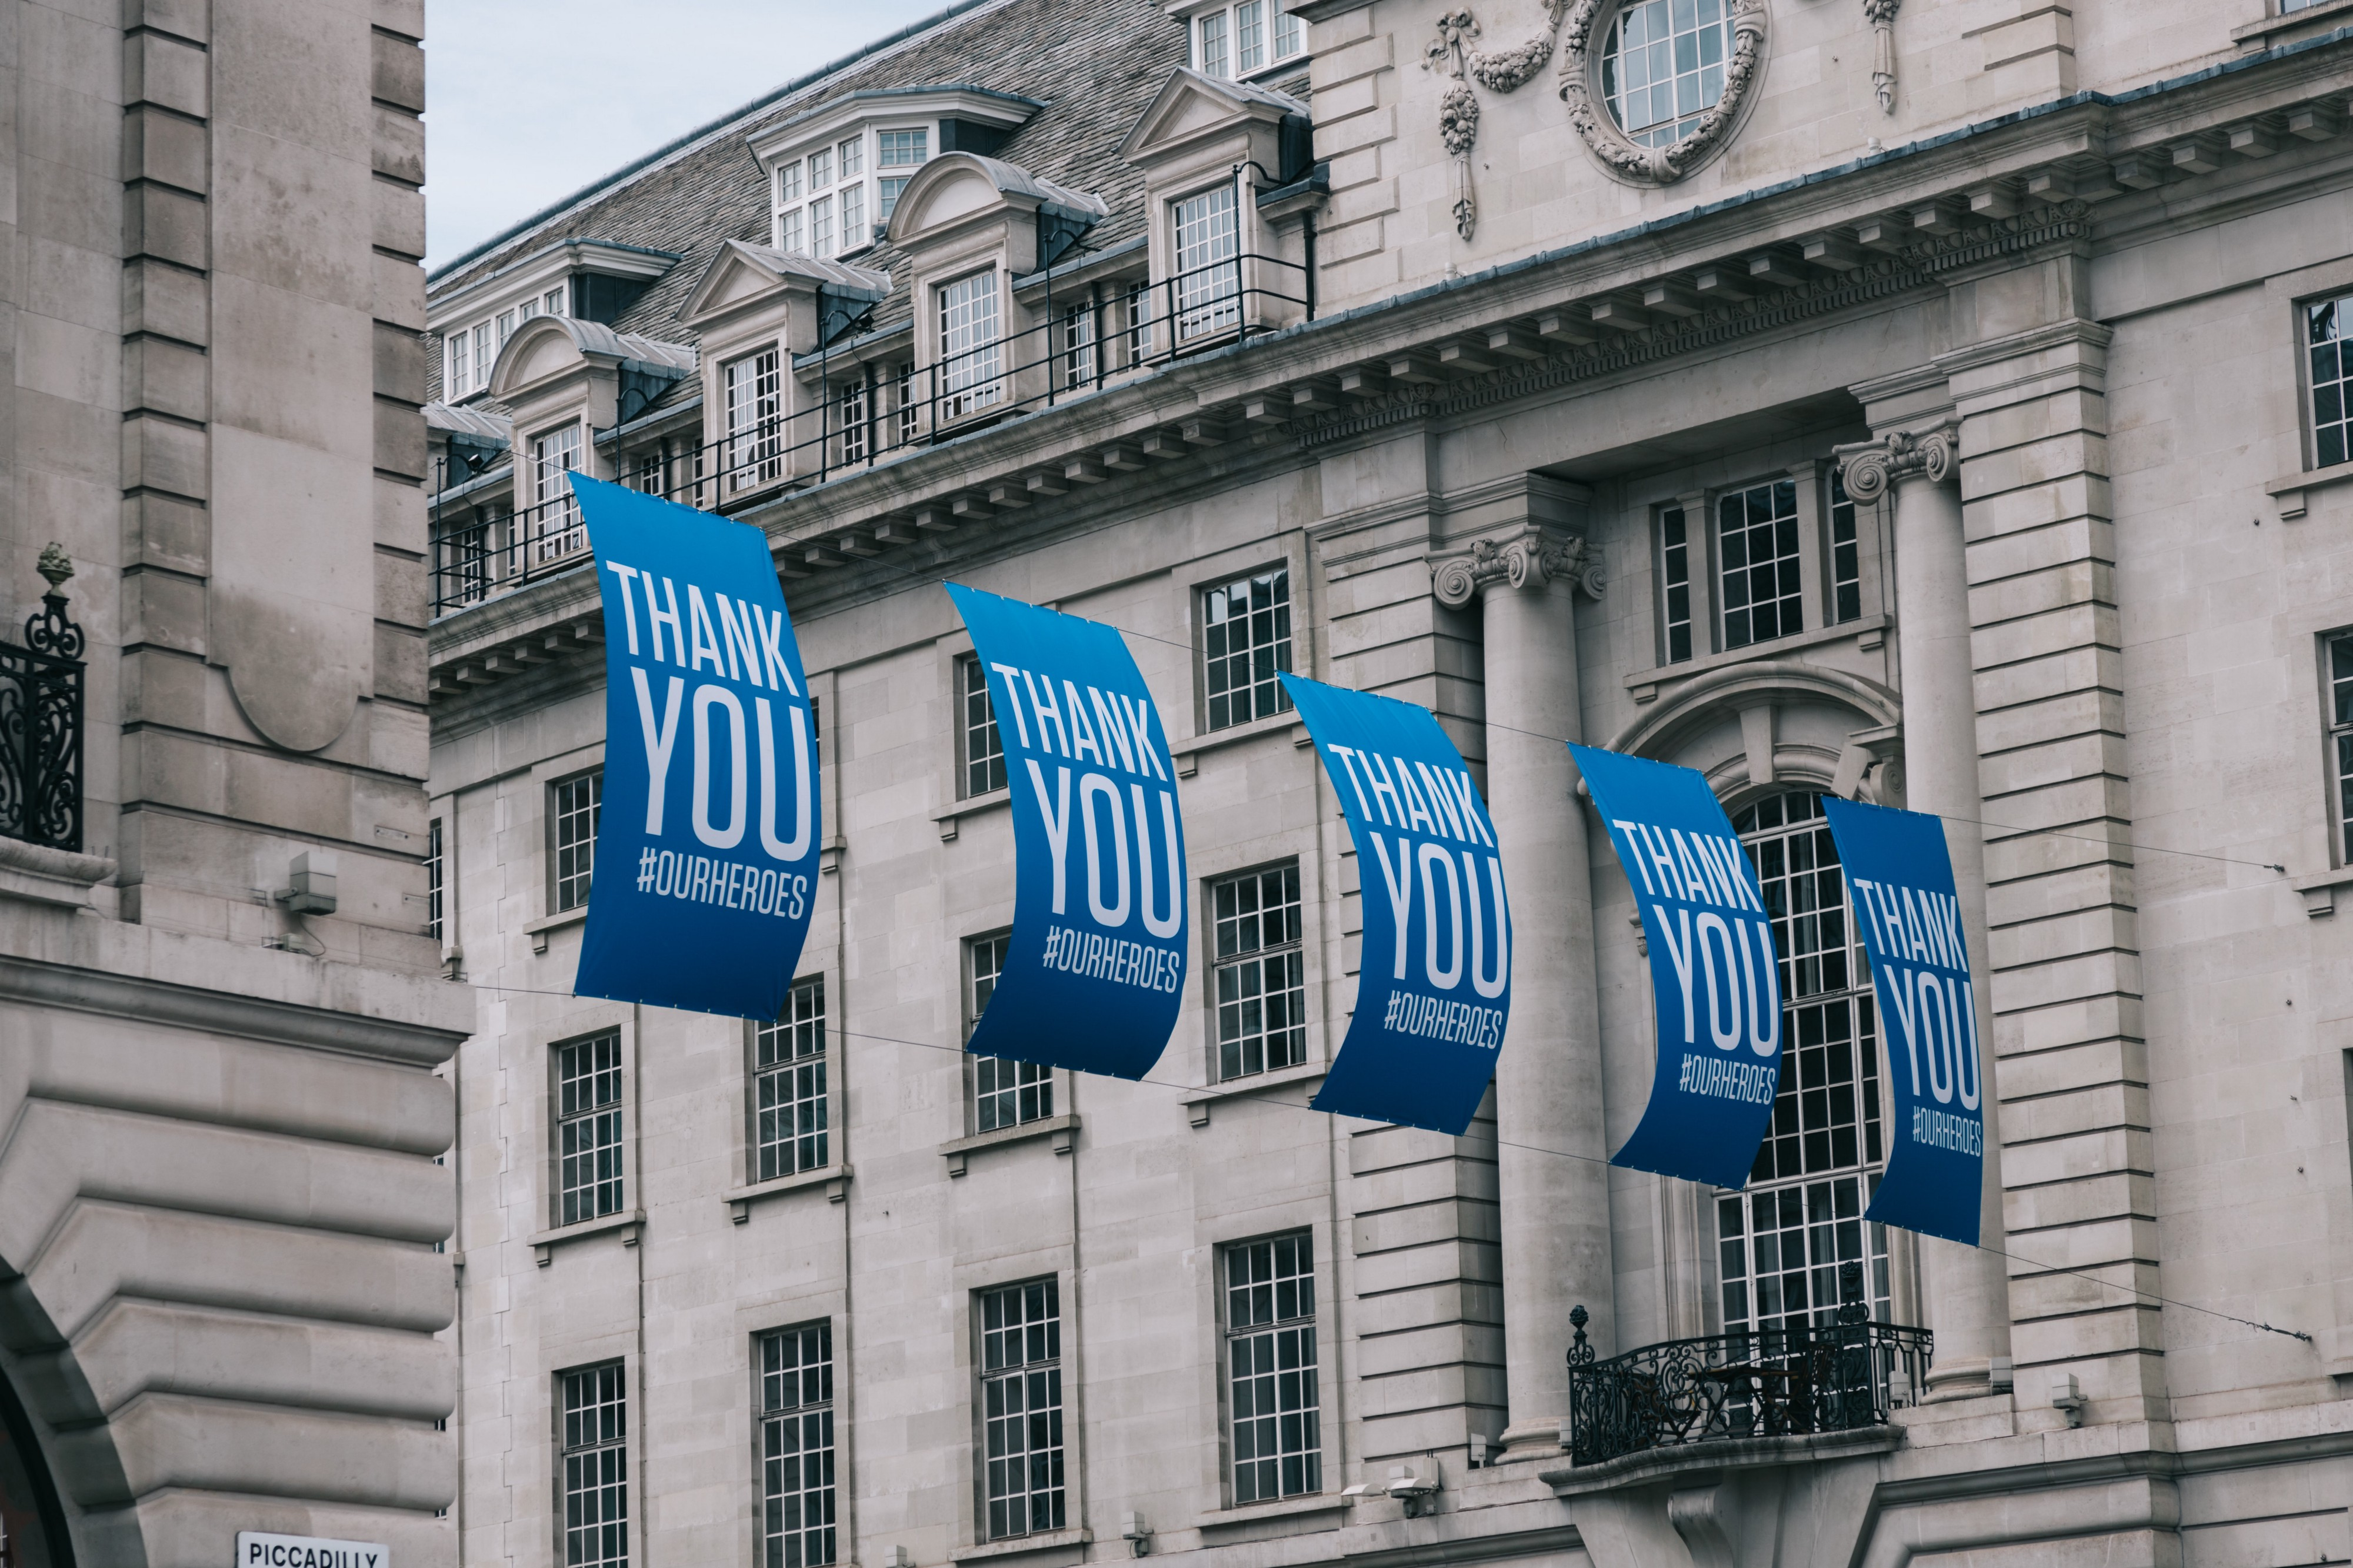 """Five large signs strung across two buildings that each say """"Thank You #OurHeroes"""""""